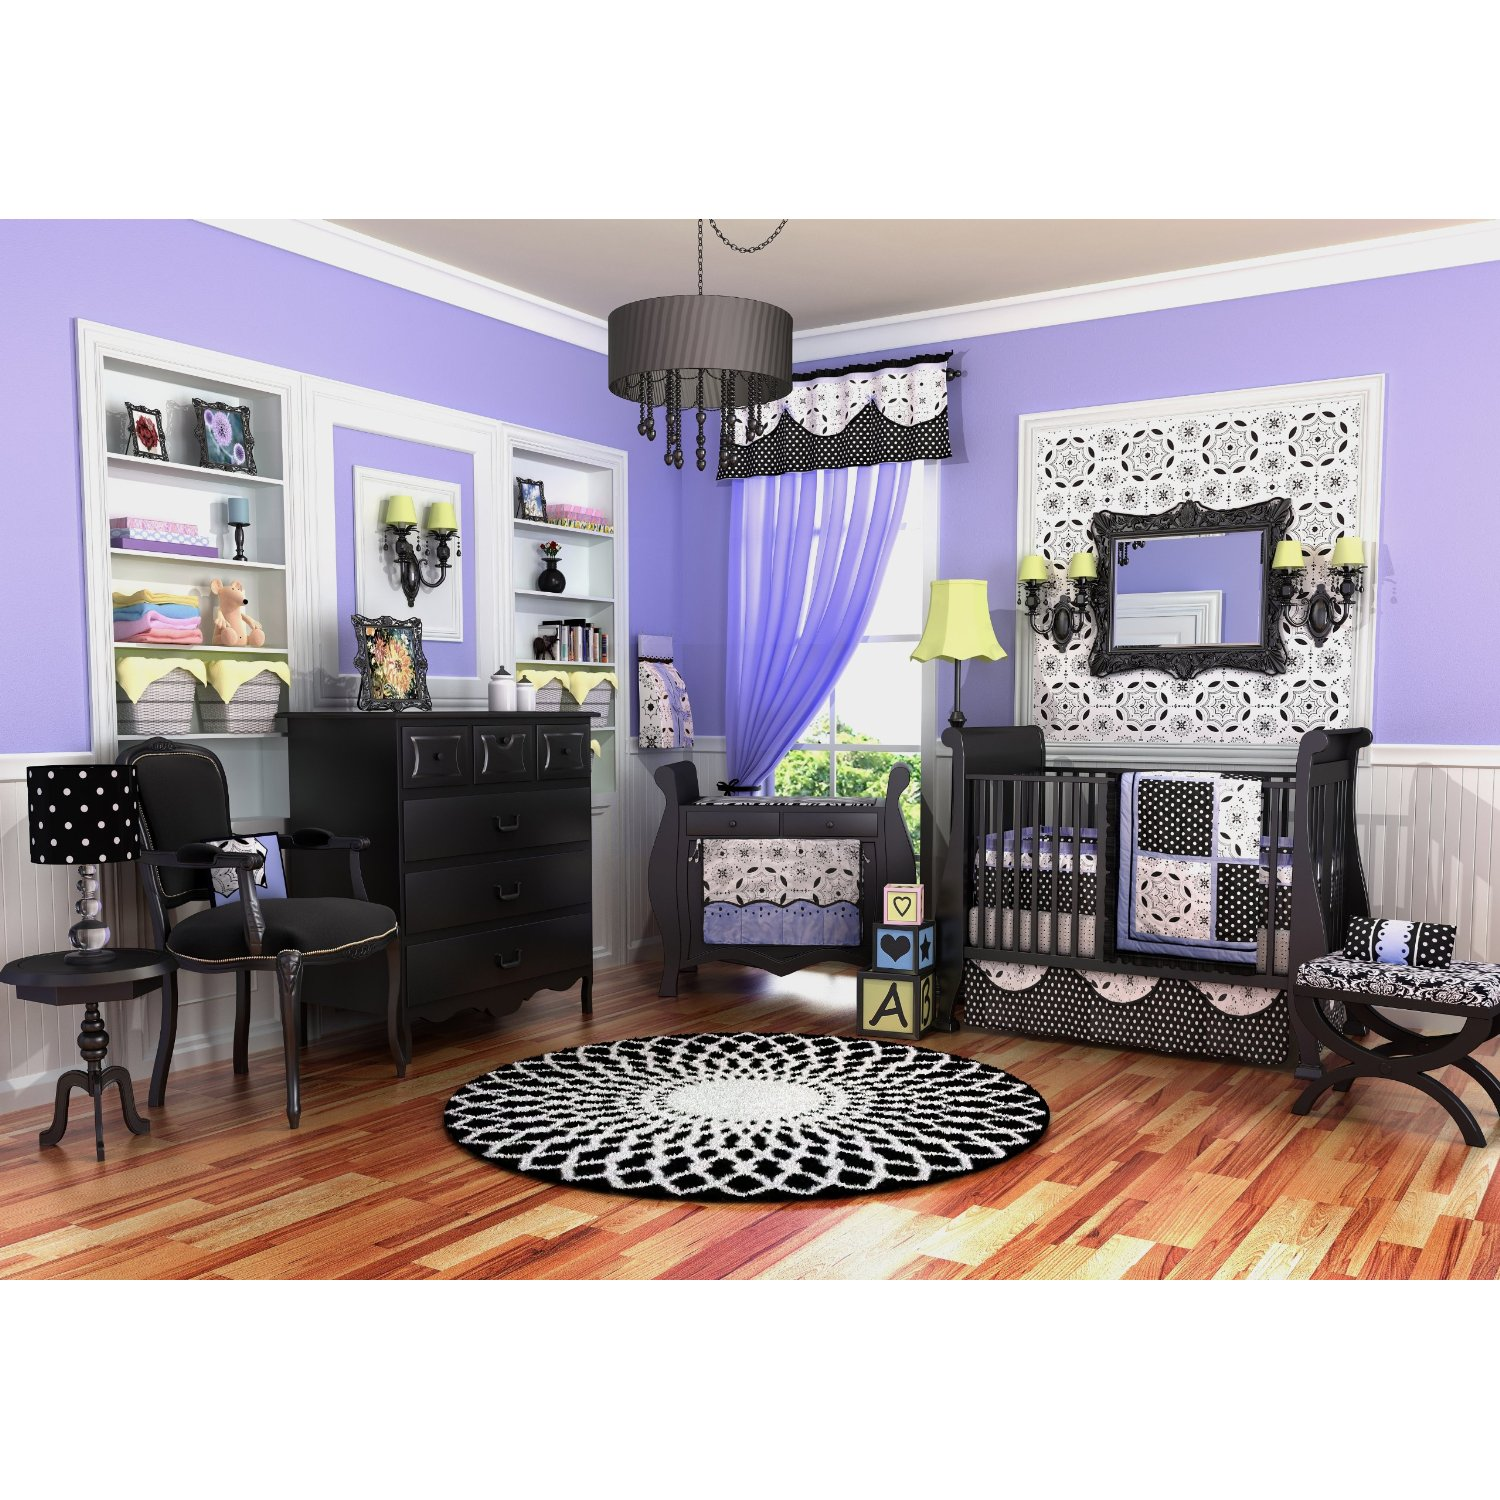 Home Design Themes simple ontemporary homes home decor waplag interior plans Balck And White Purple Of Baby Room With Black Furniture Wooden Set